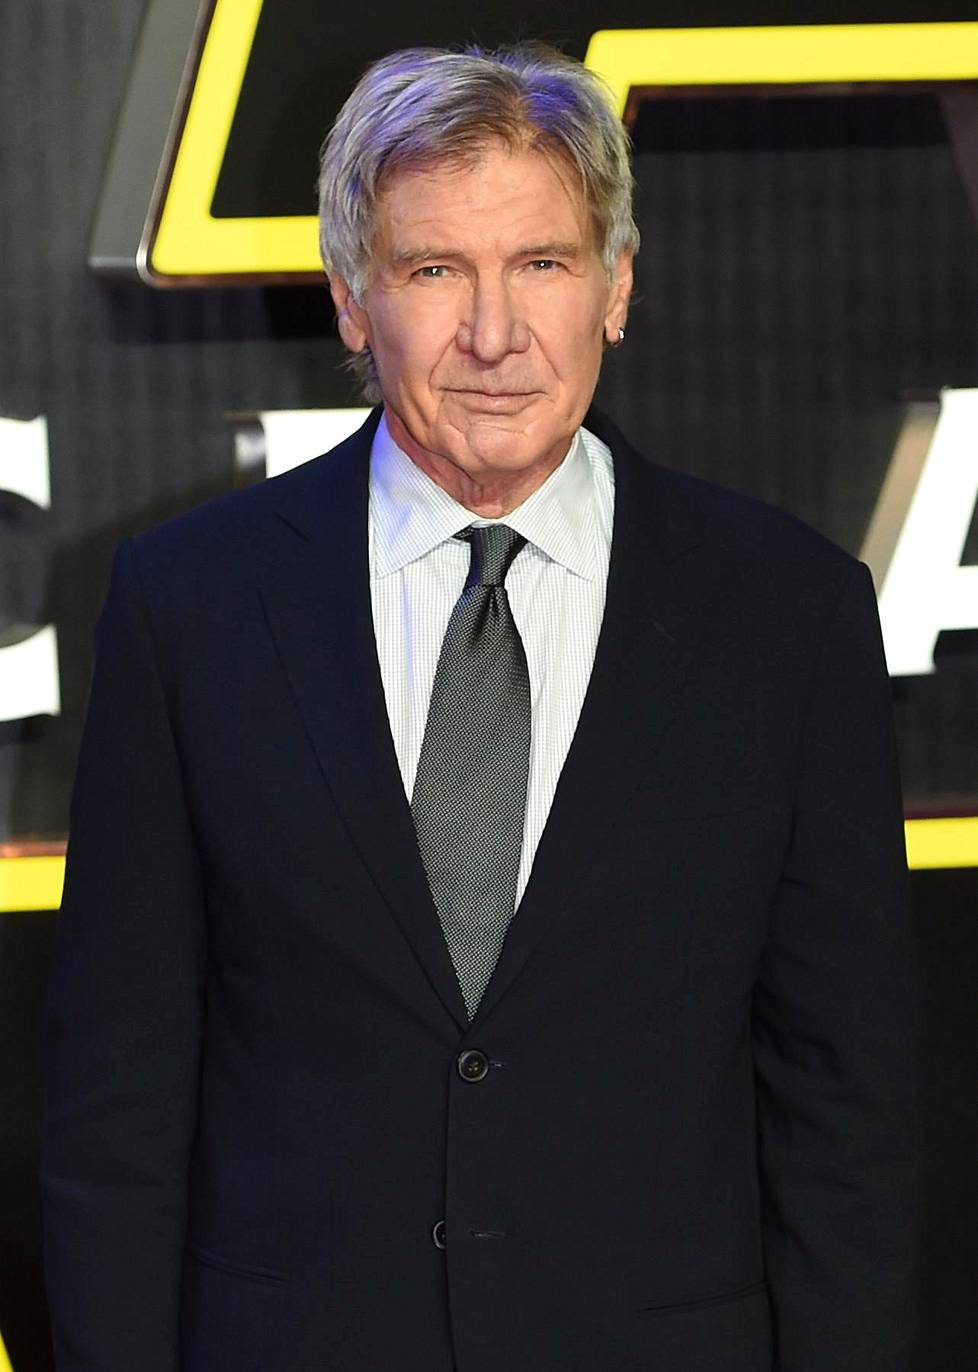 5. Harrison Ford